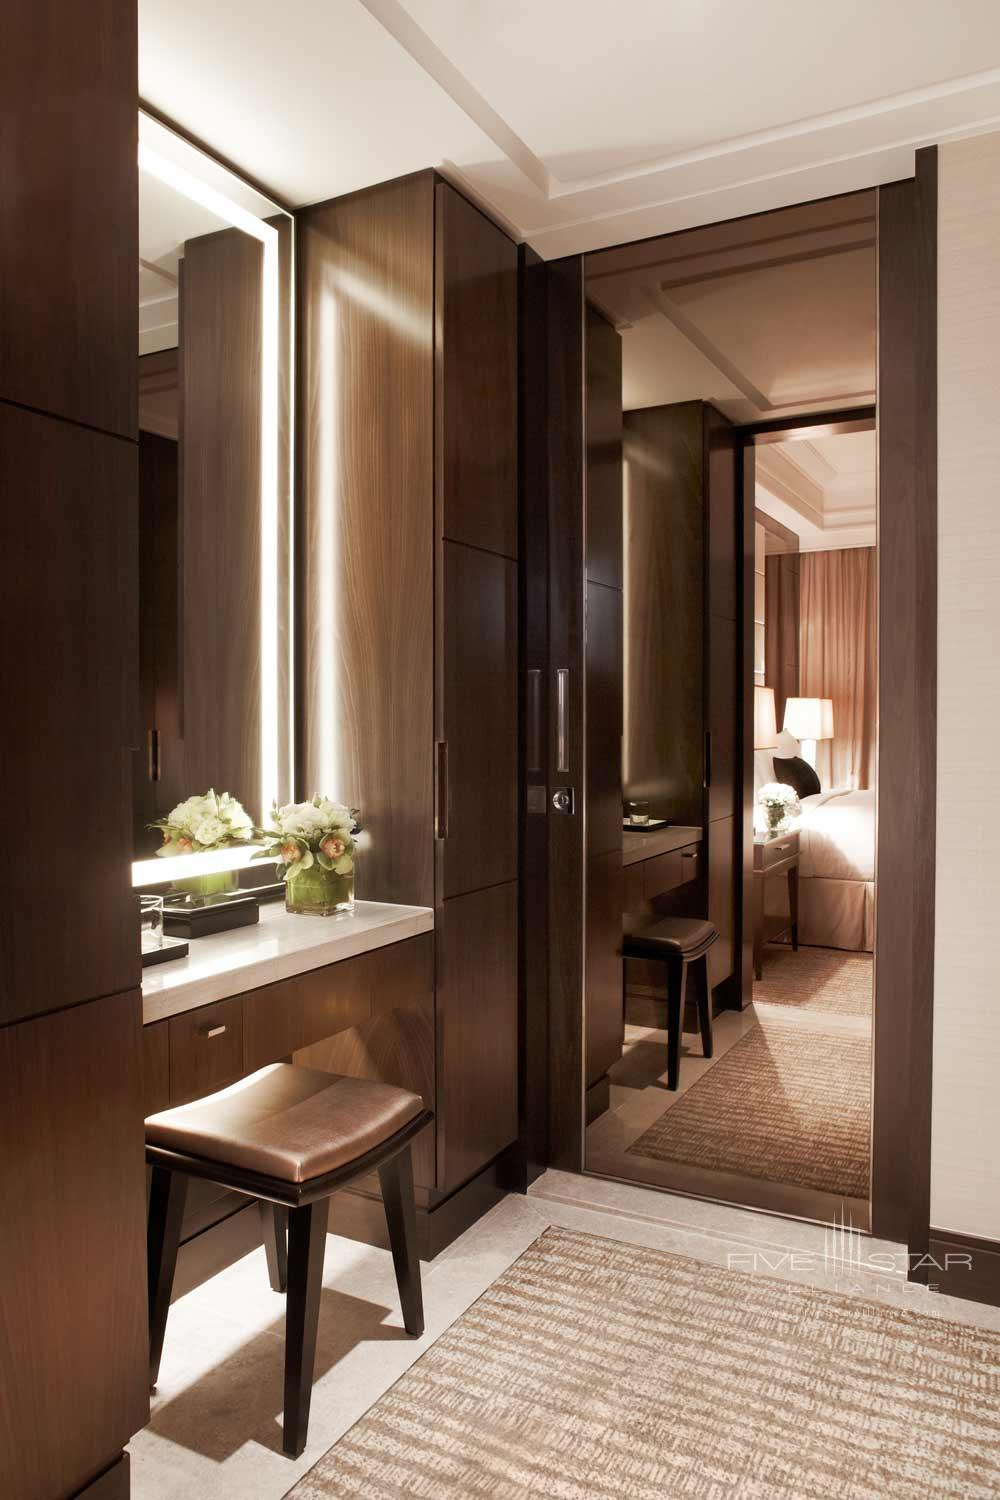 Photo Gallery For Singapore Marriott Hotel In Singapore Five Star Alliance